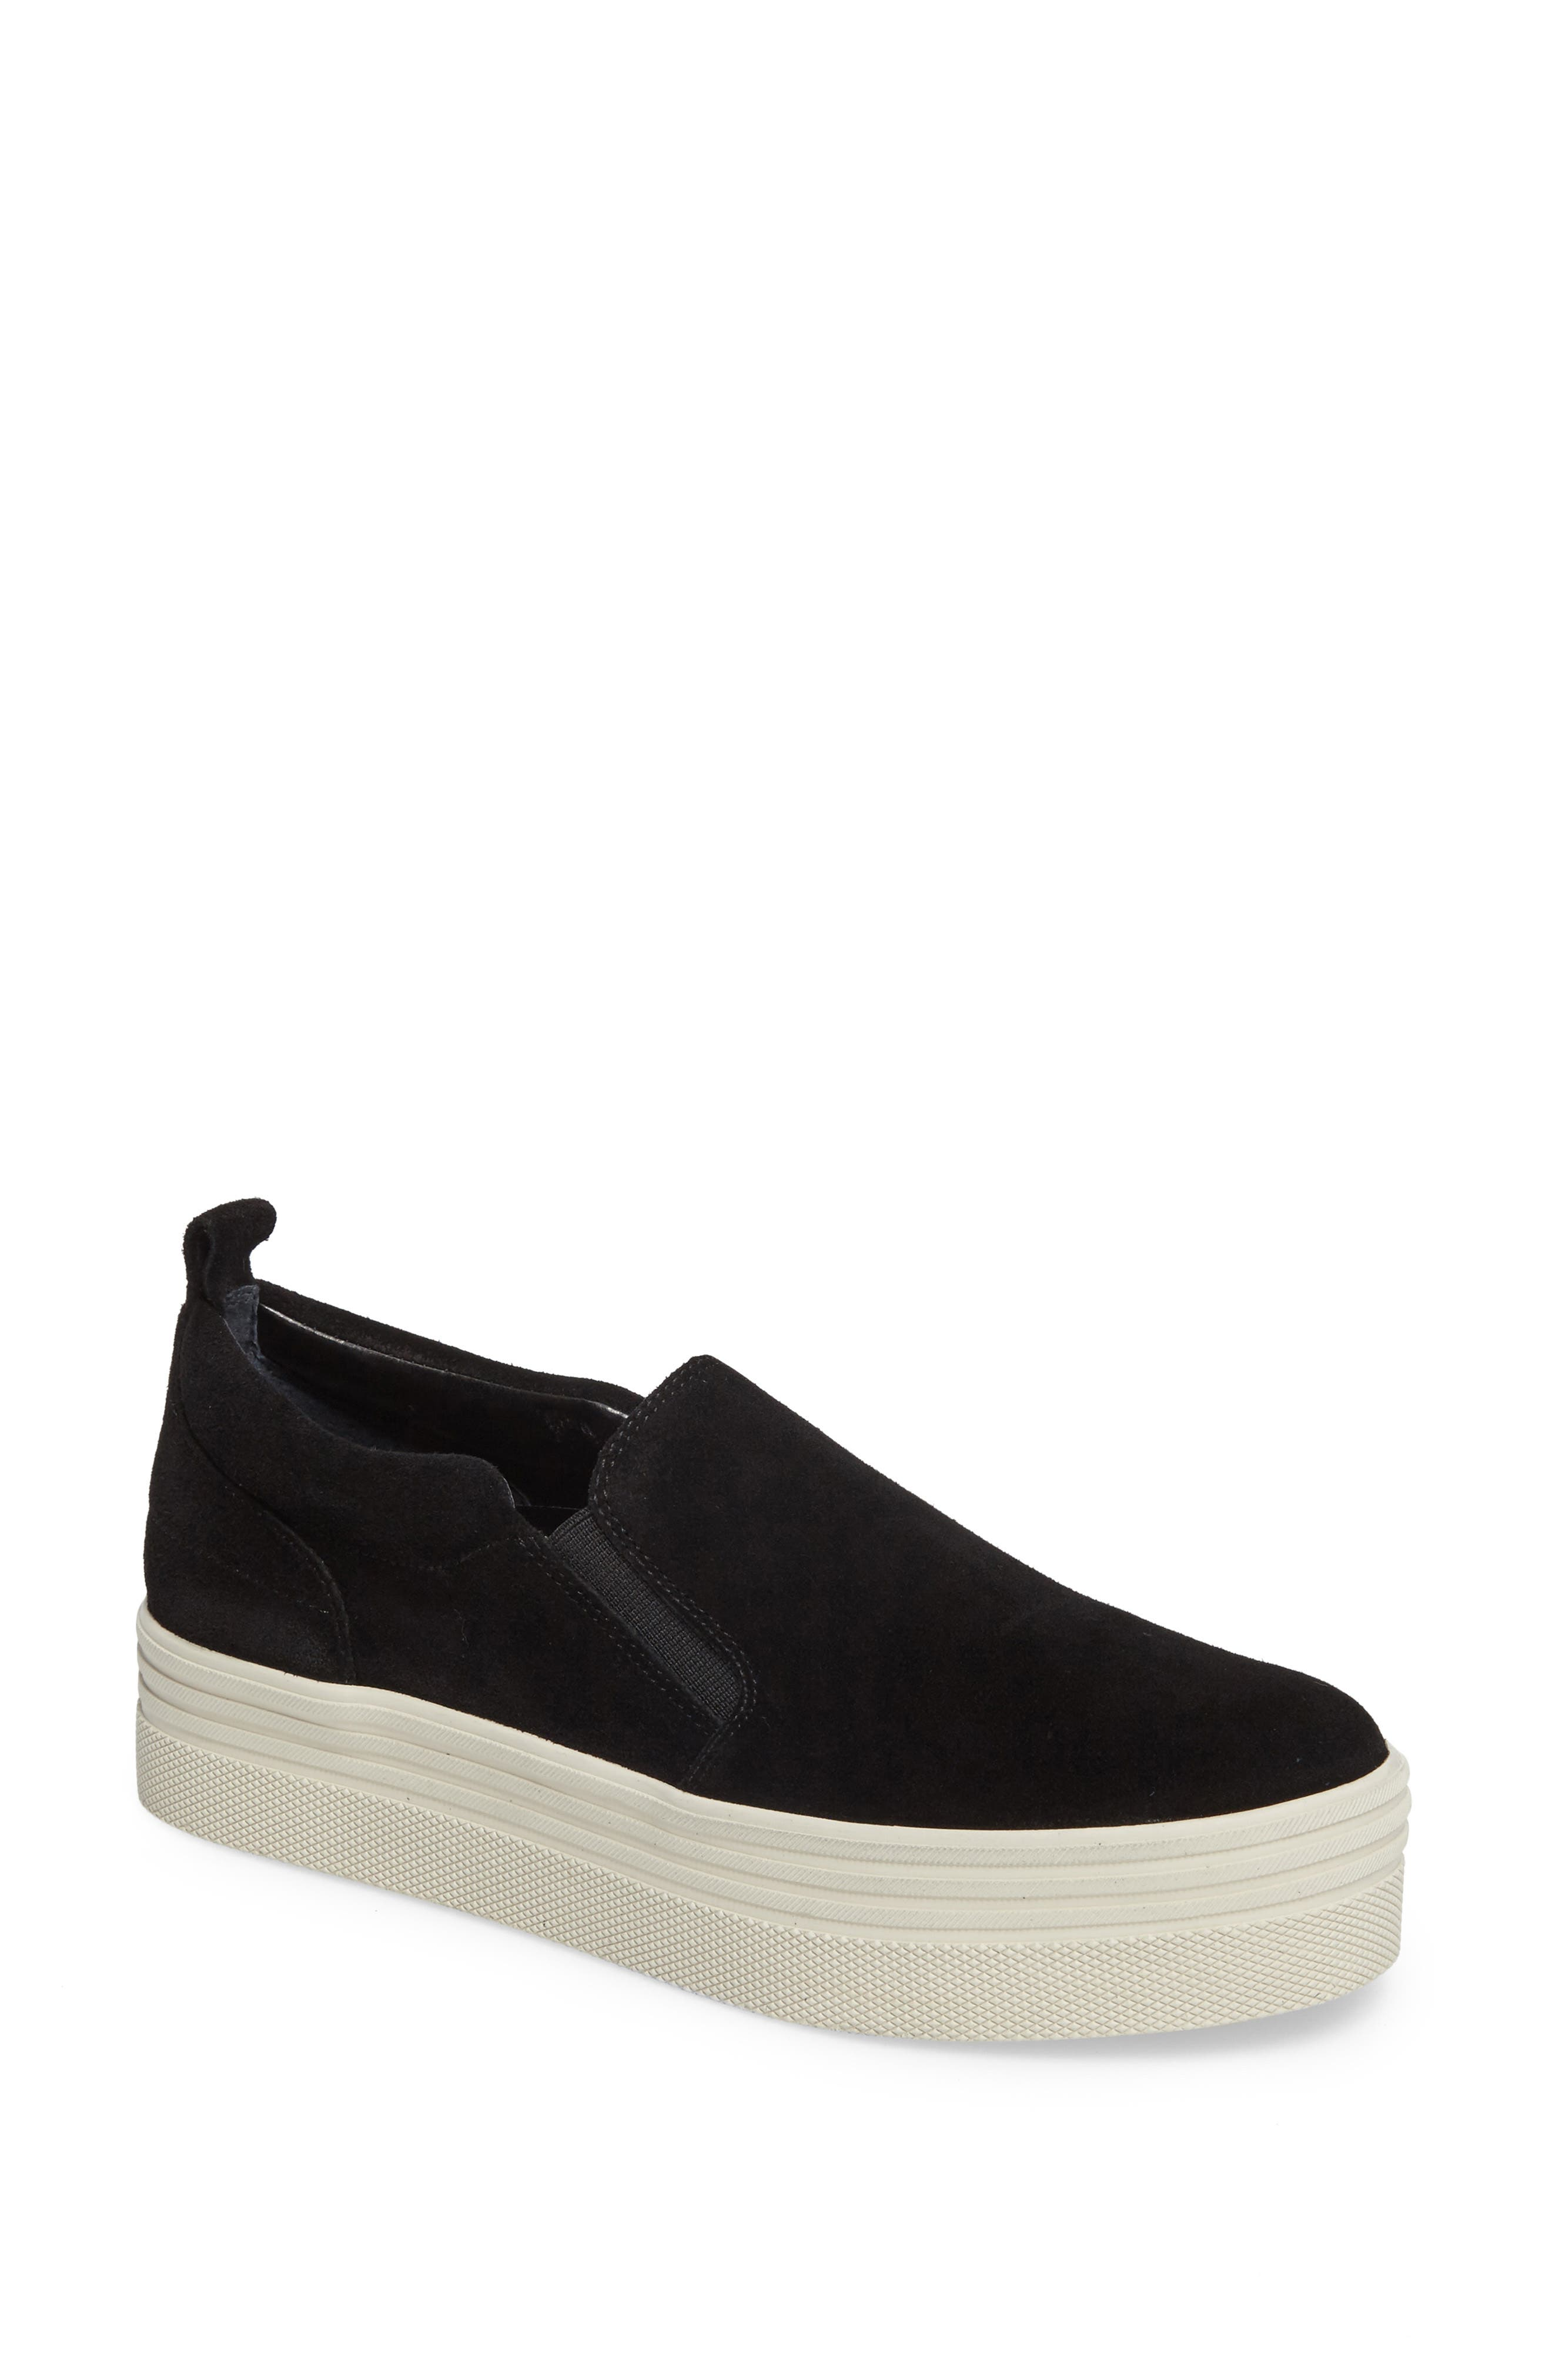 Elise Platform Sneaker,                         Main,                         color, 002